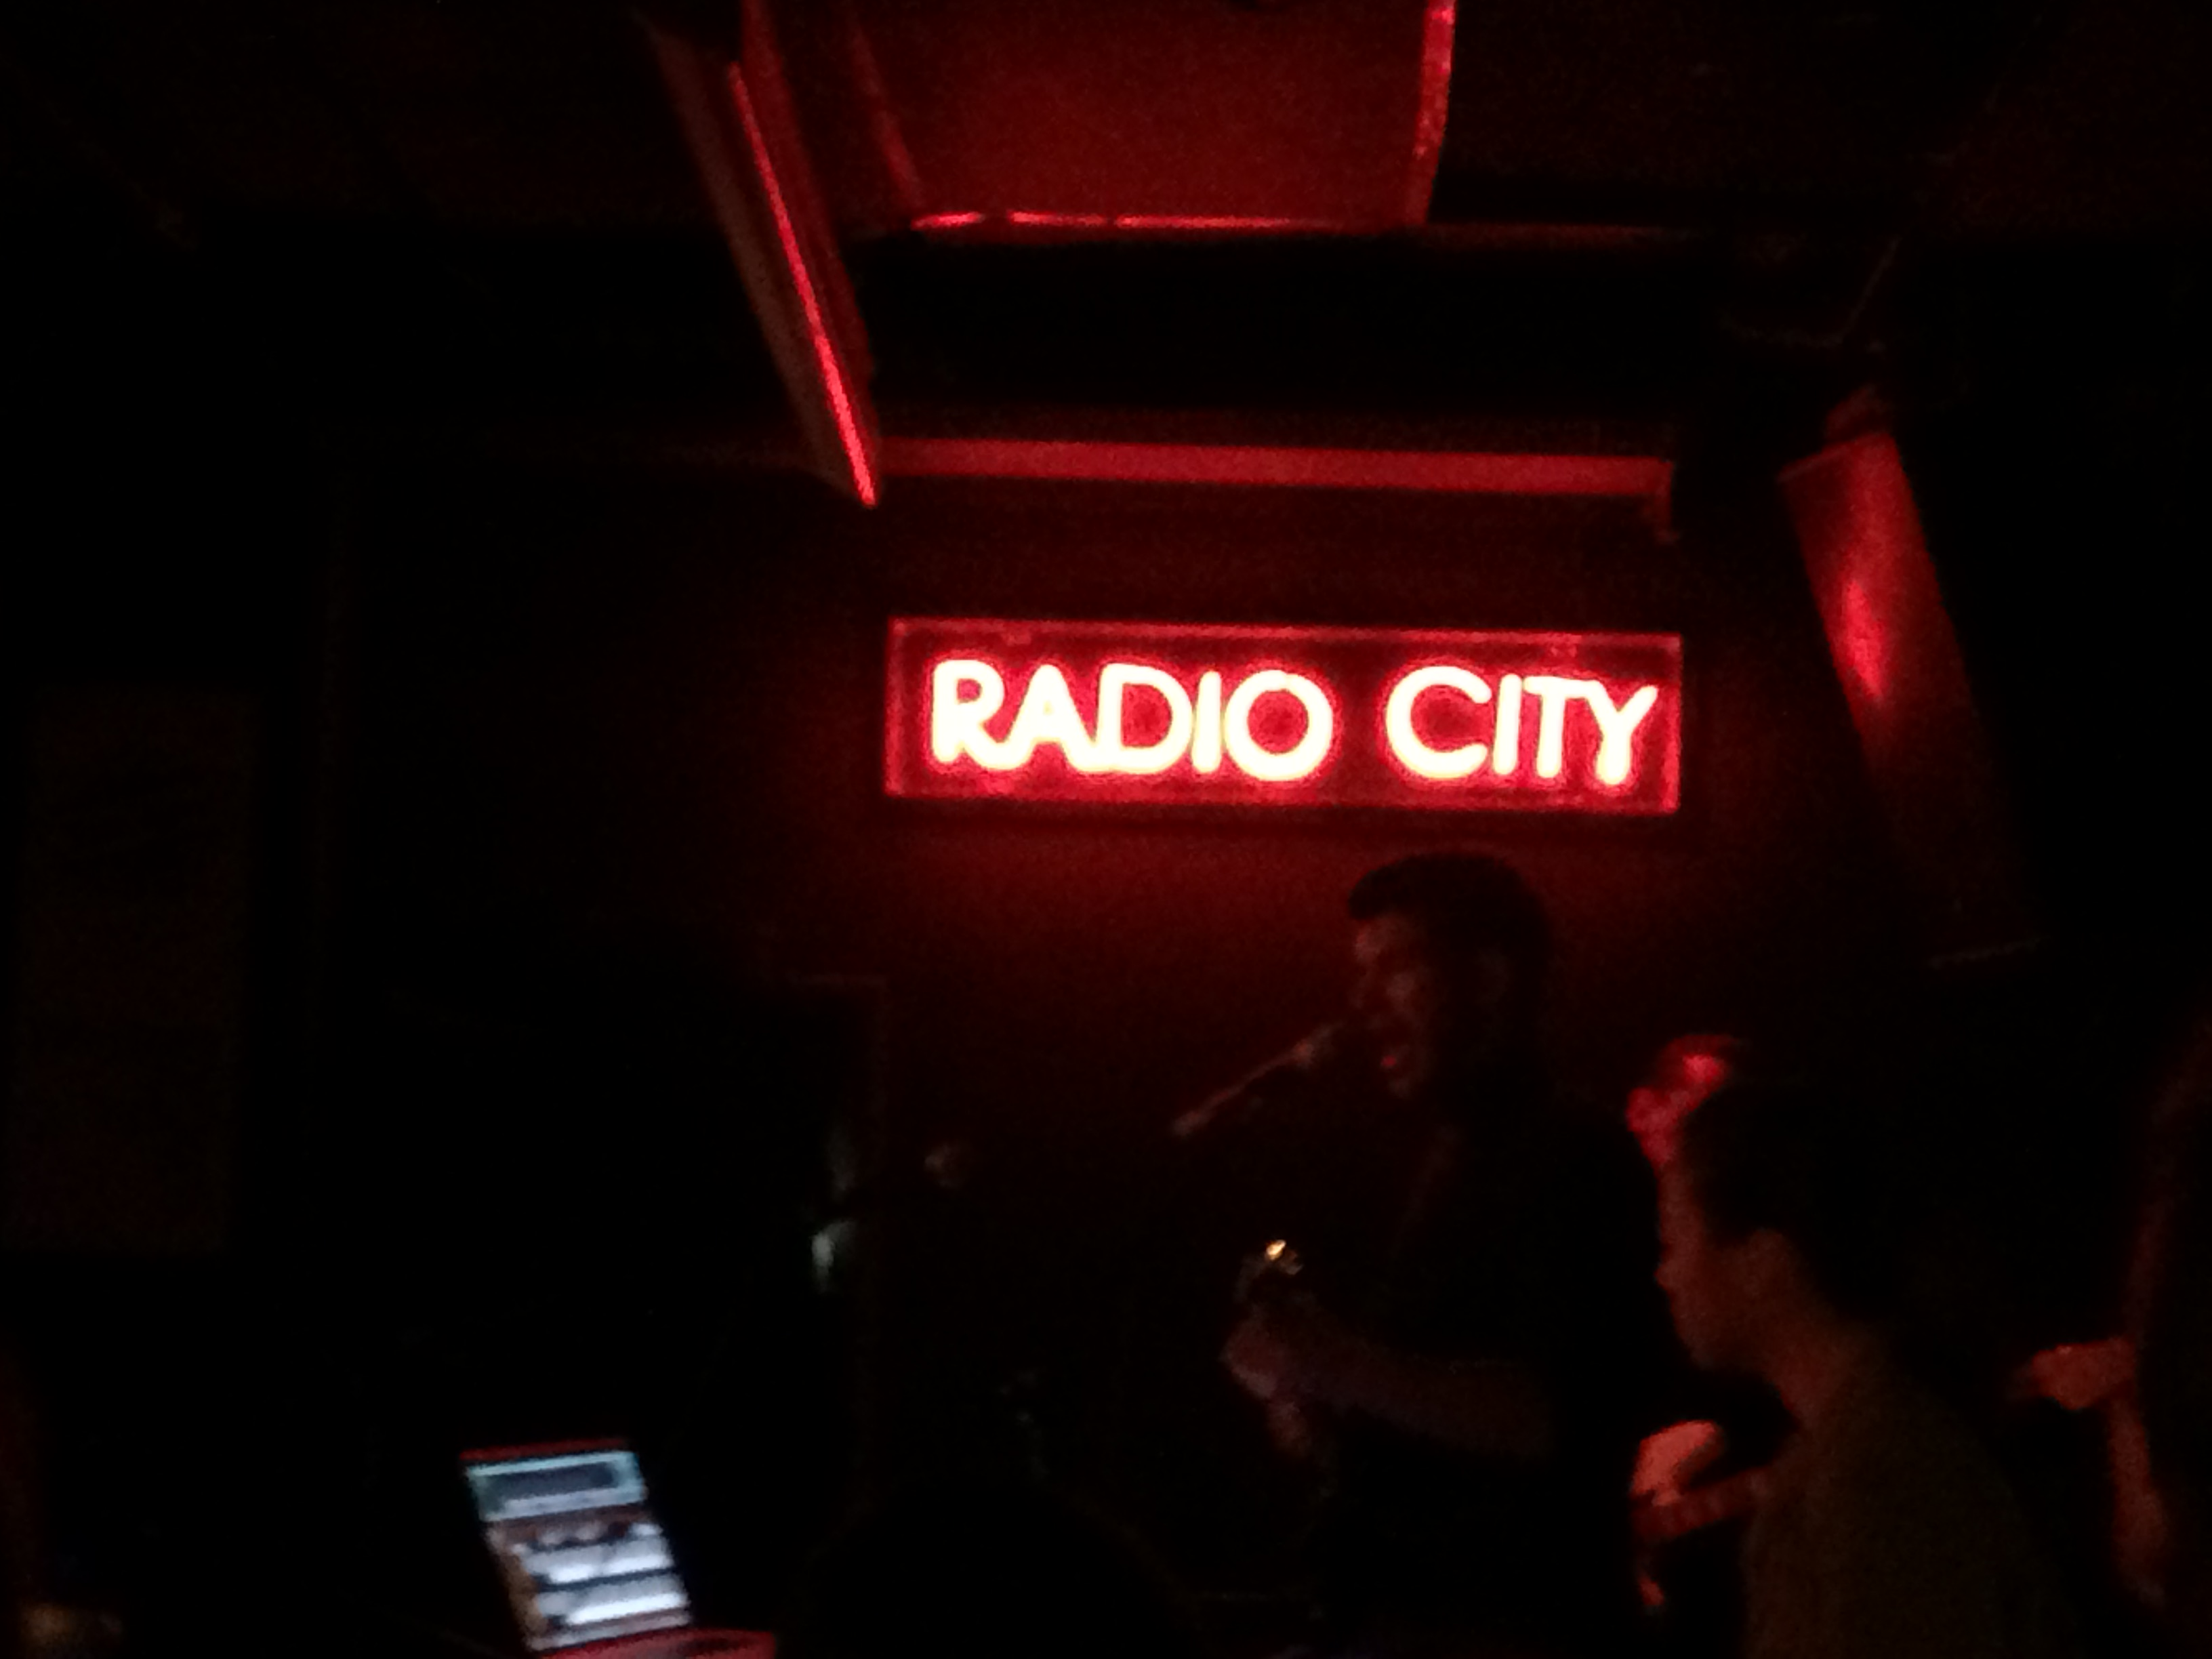 radio city valencia